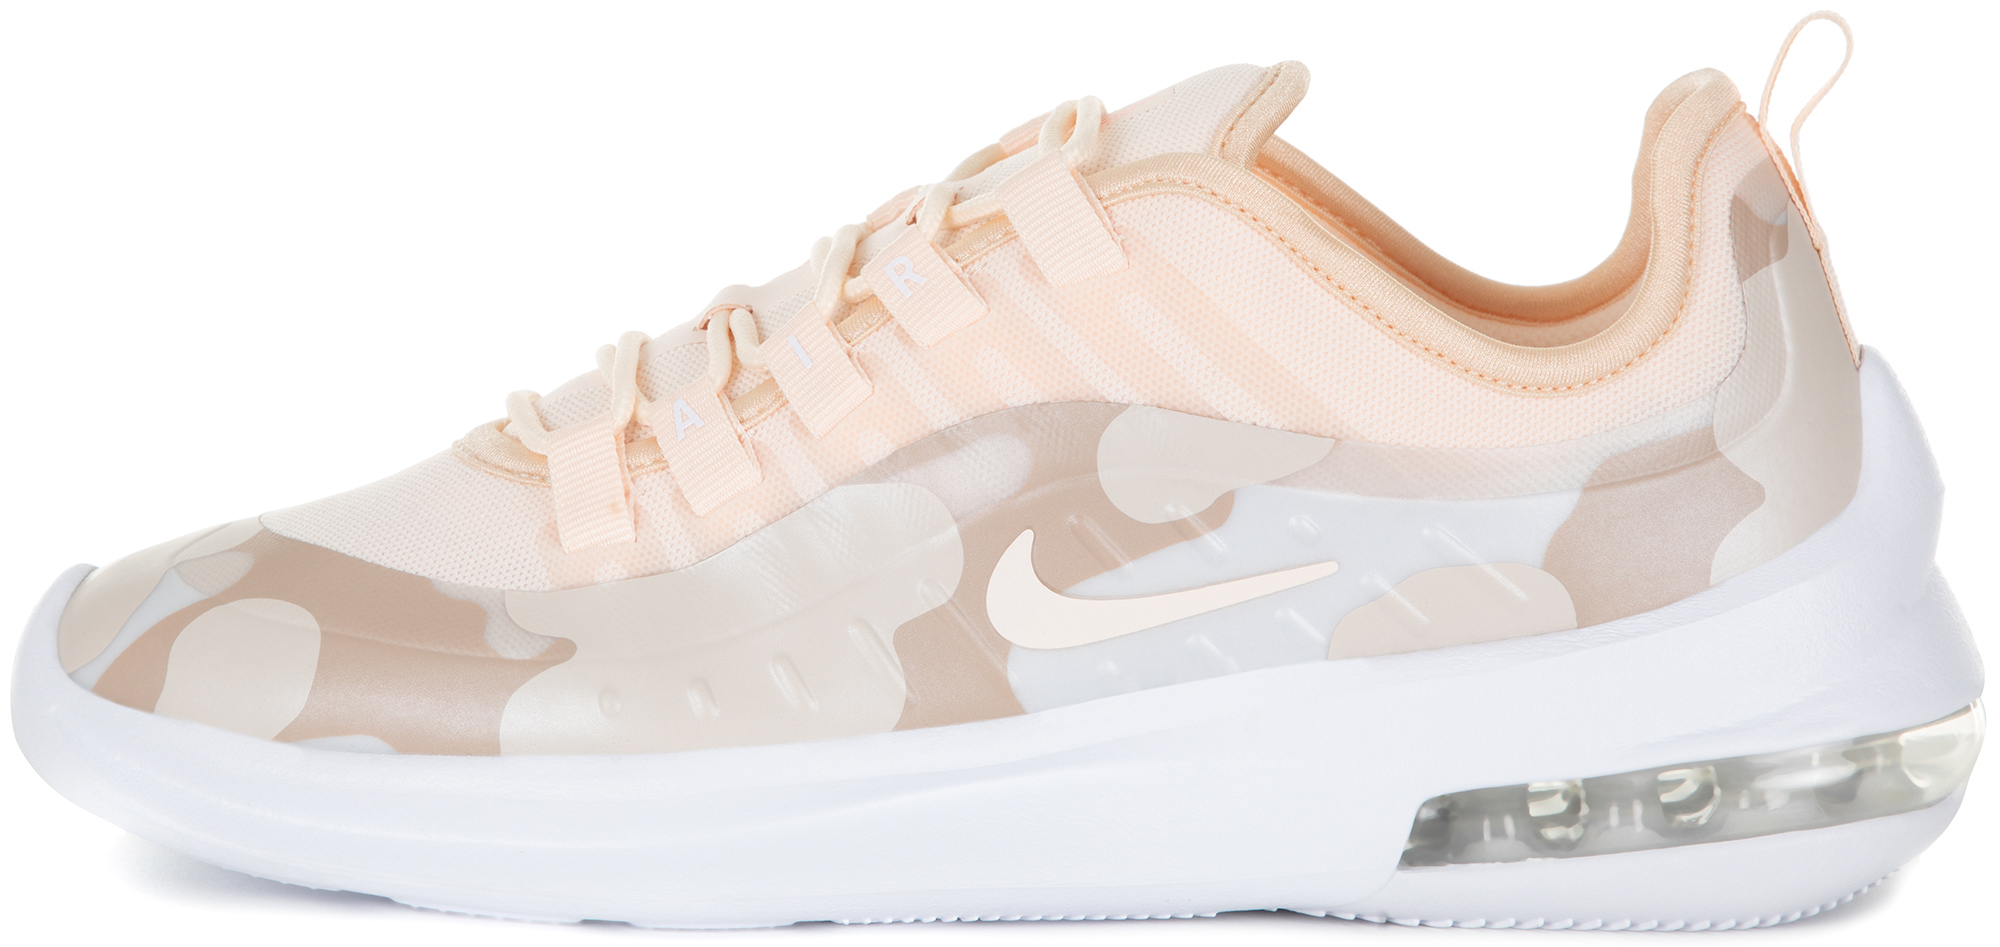 Nike Кроссовки женские Nike Air Max Axis Premium, размер 39,5